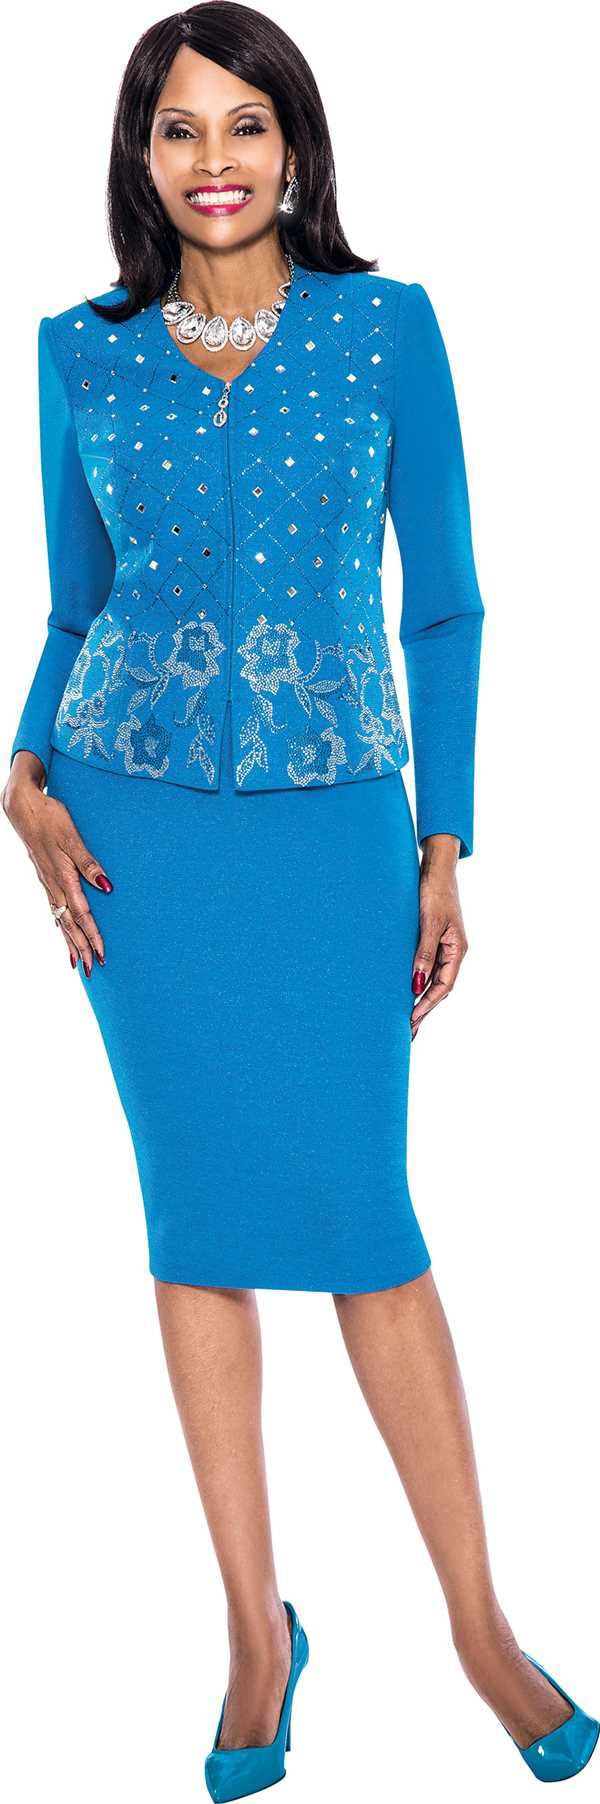 susanna-3714-Teal-skirt-suits-for-church-spring-2016